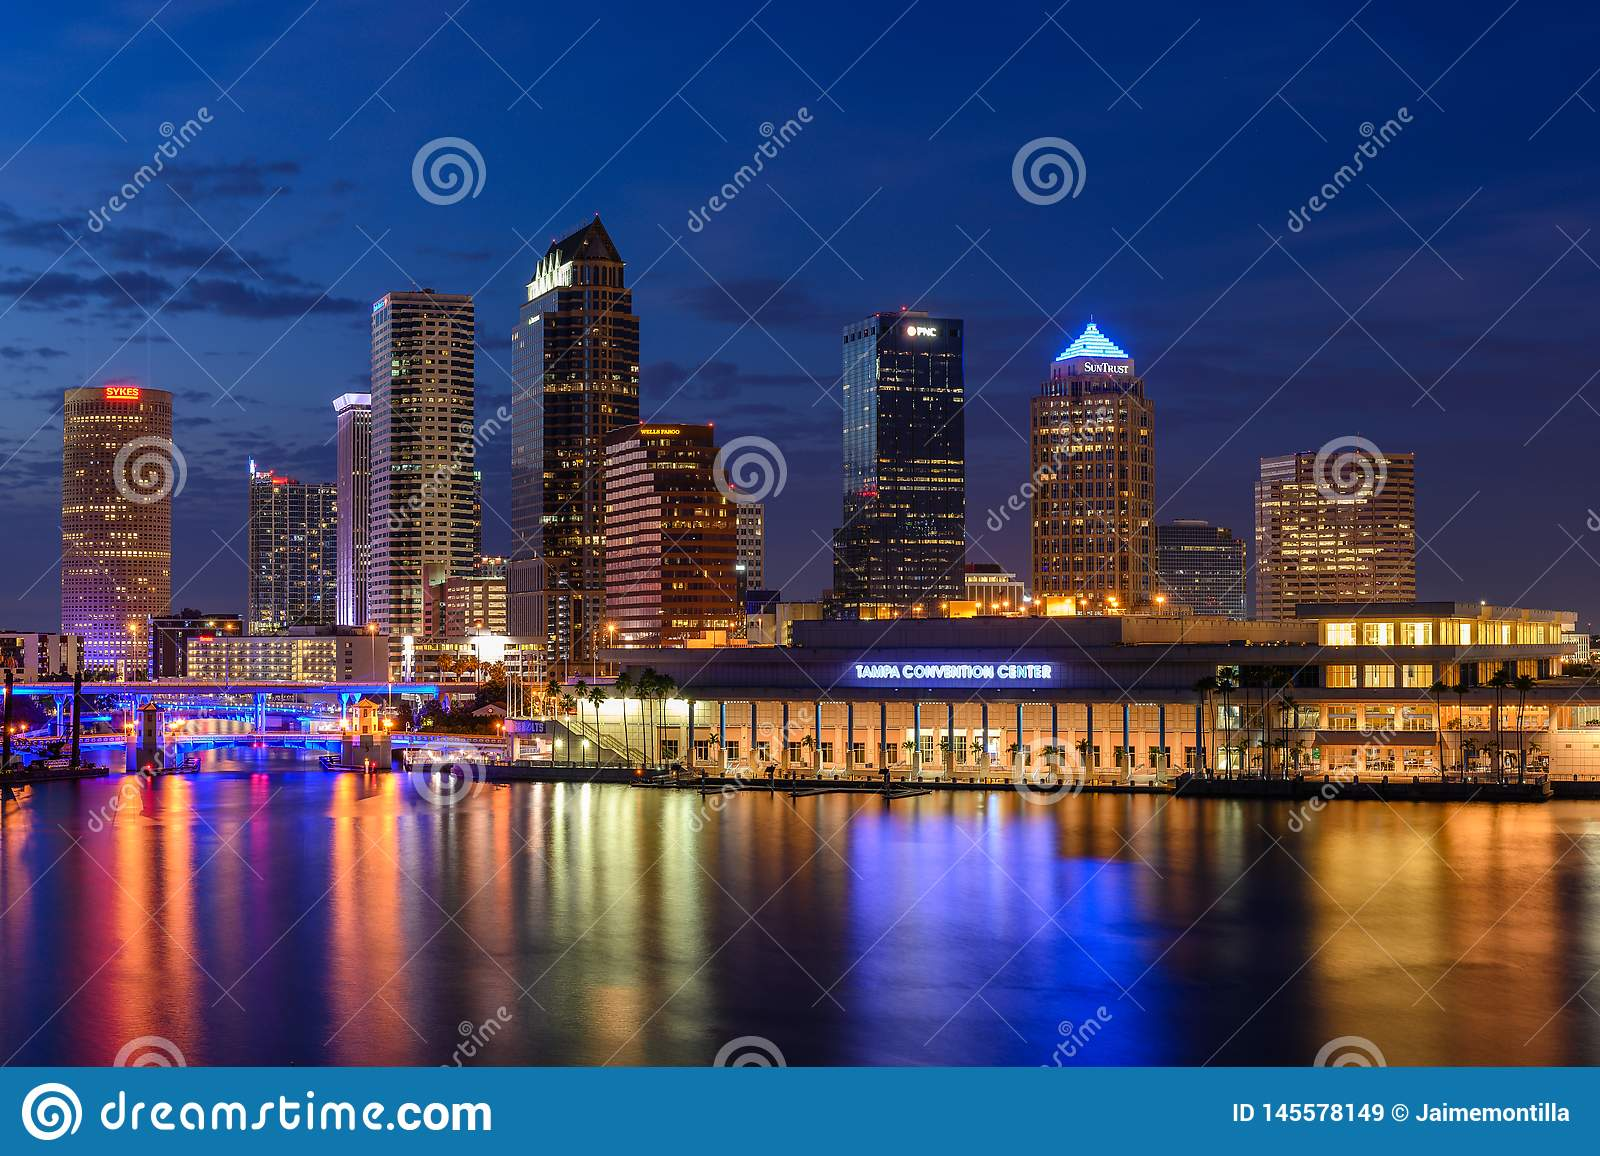 Tampa Skyline at Blue Hour